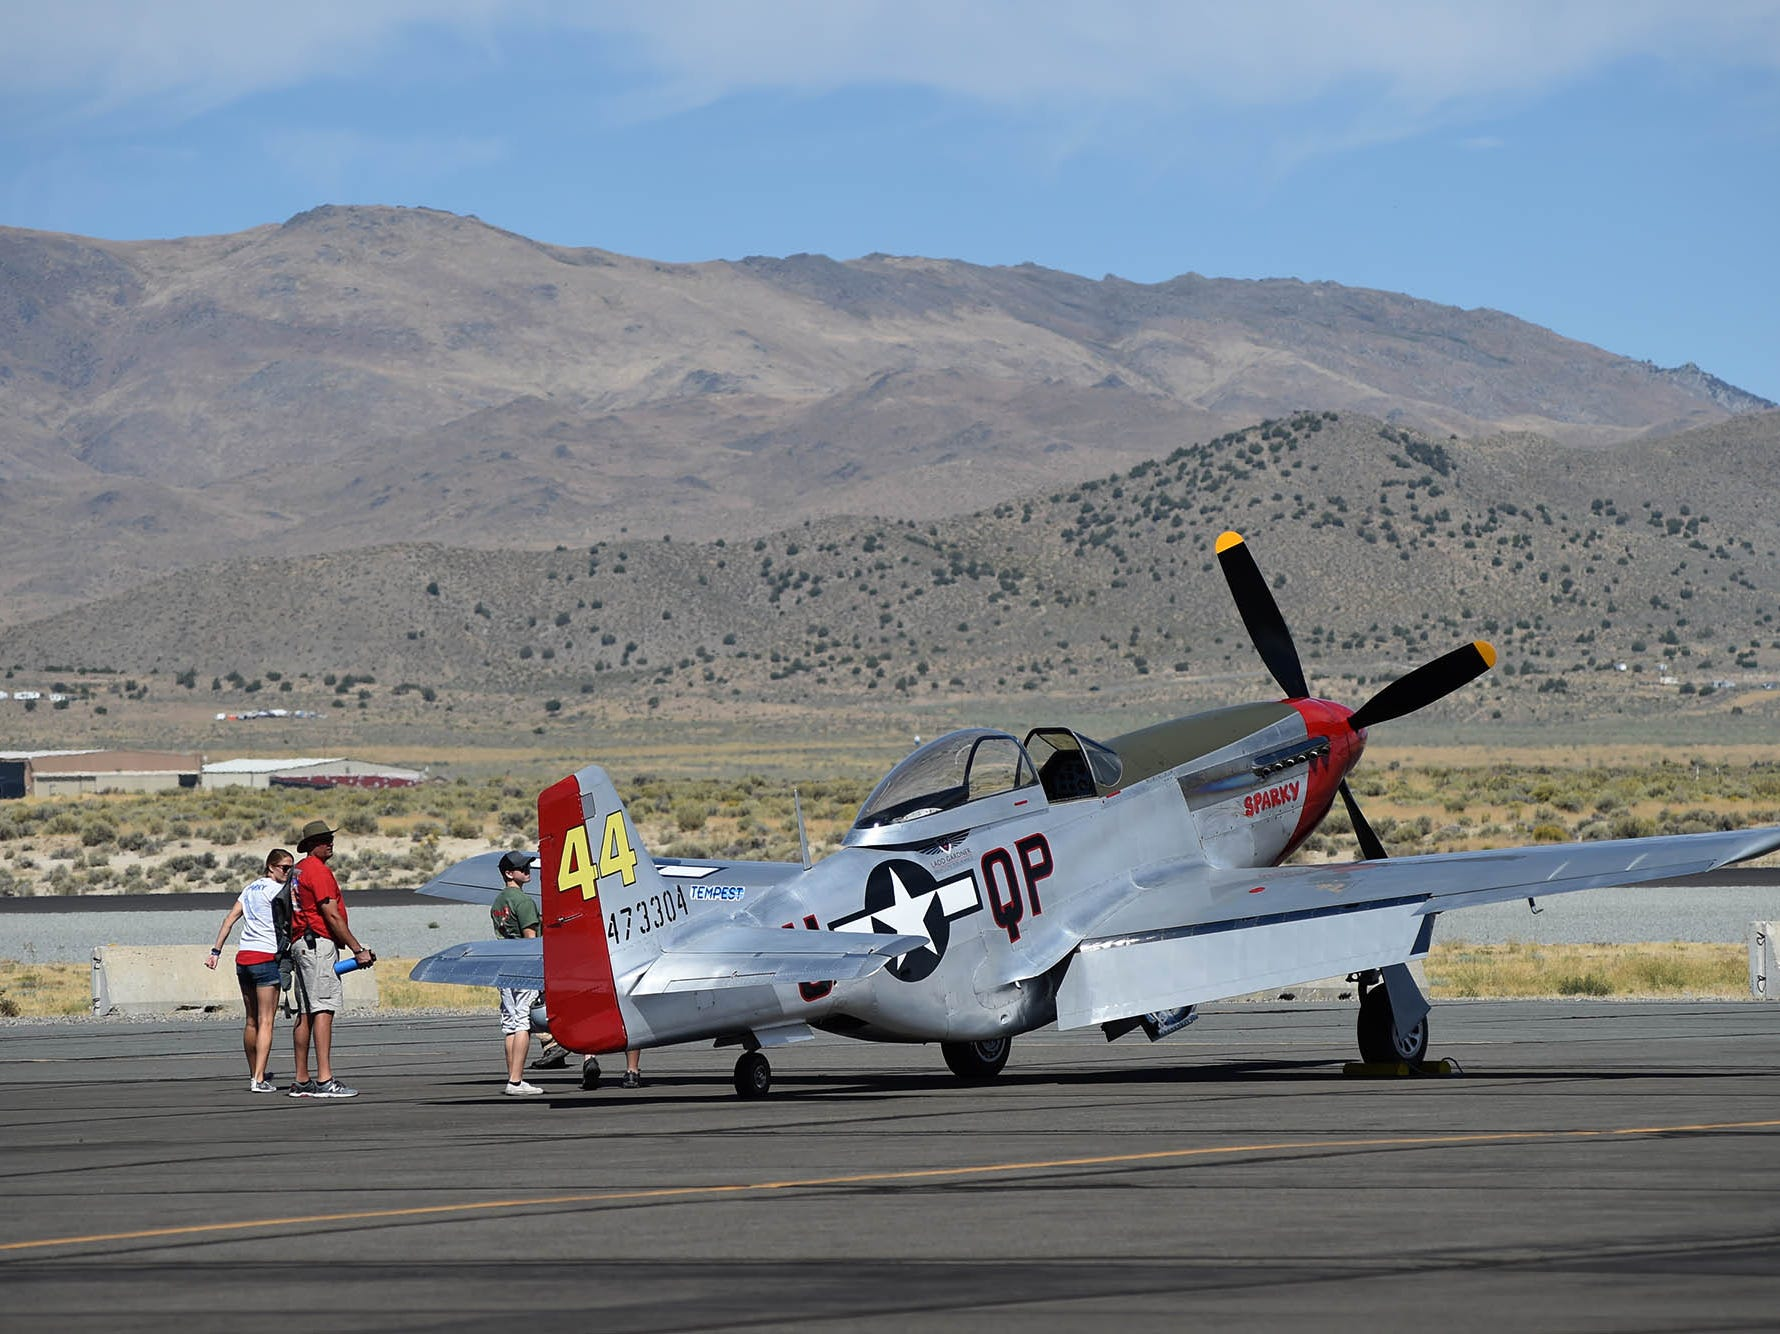 Photos of airplanes and people at the 2018 National Championship Air Races.